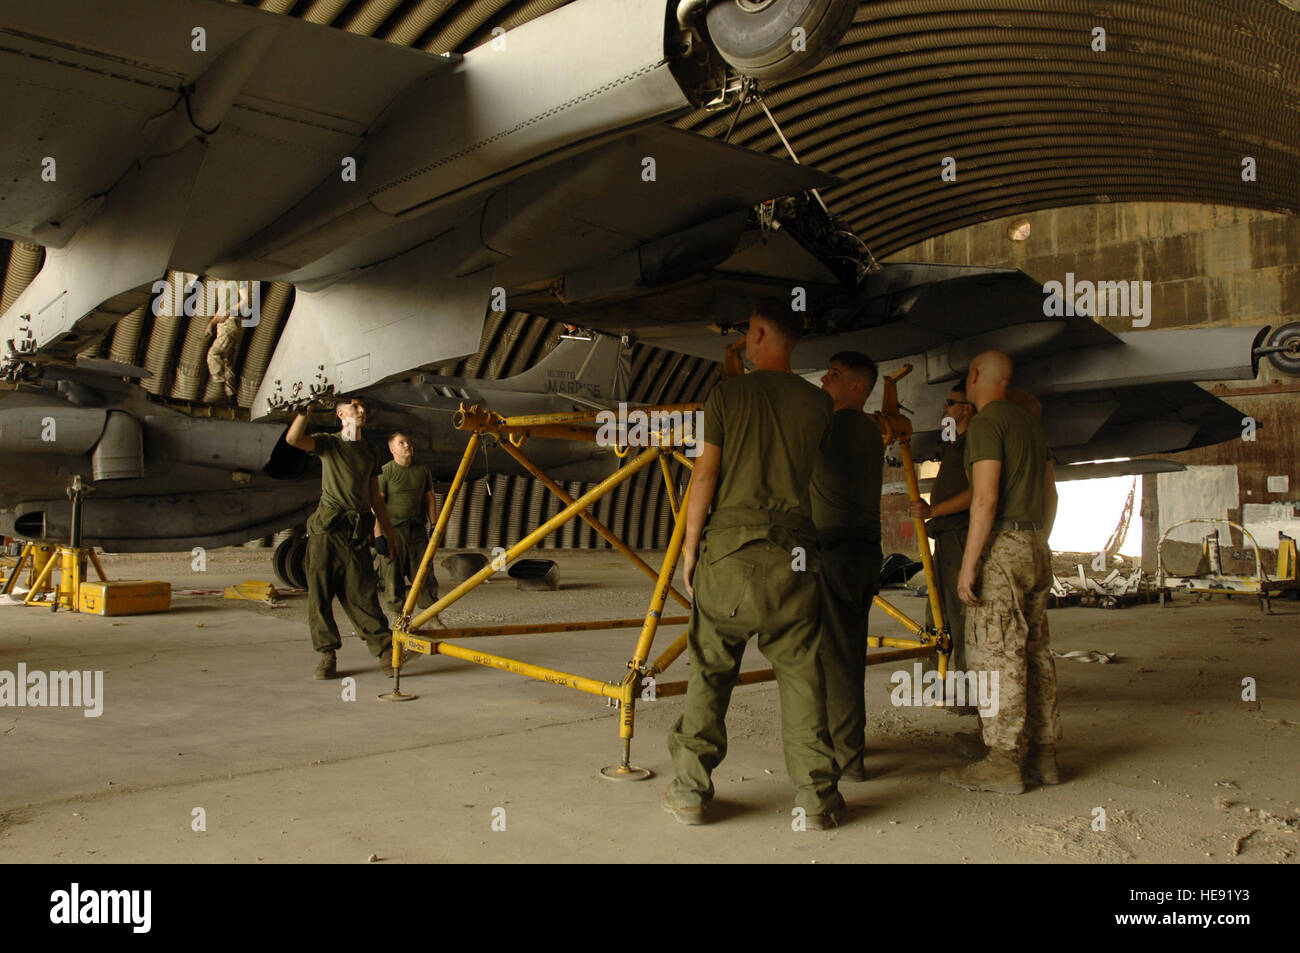 Marines of the 22nd Marine Expeditionary Unit, Cherry Point, N.C., assemble a wing stand, Oct. 11, at Ali Air Base, - Stock Image